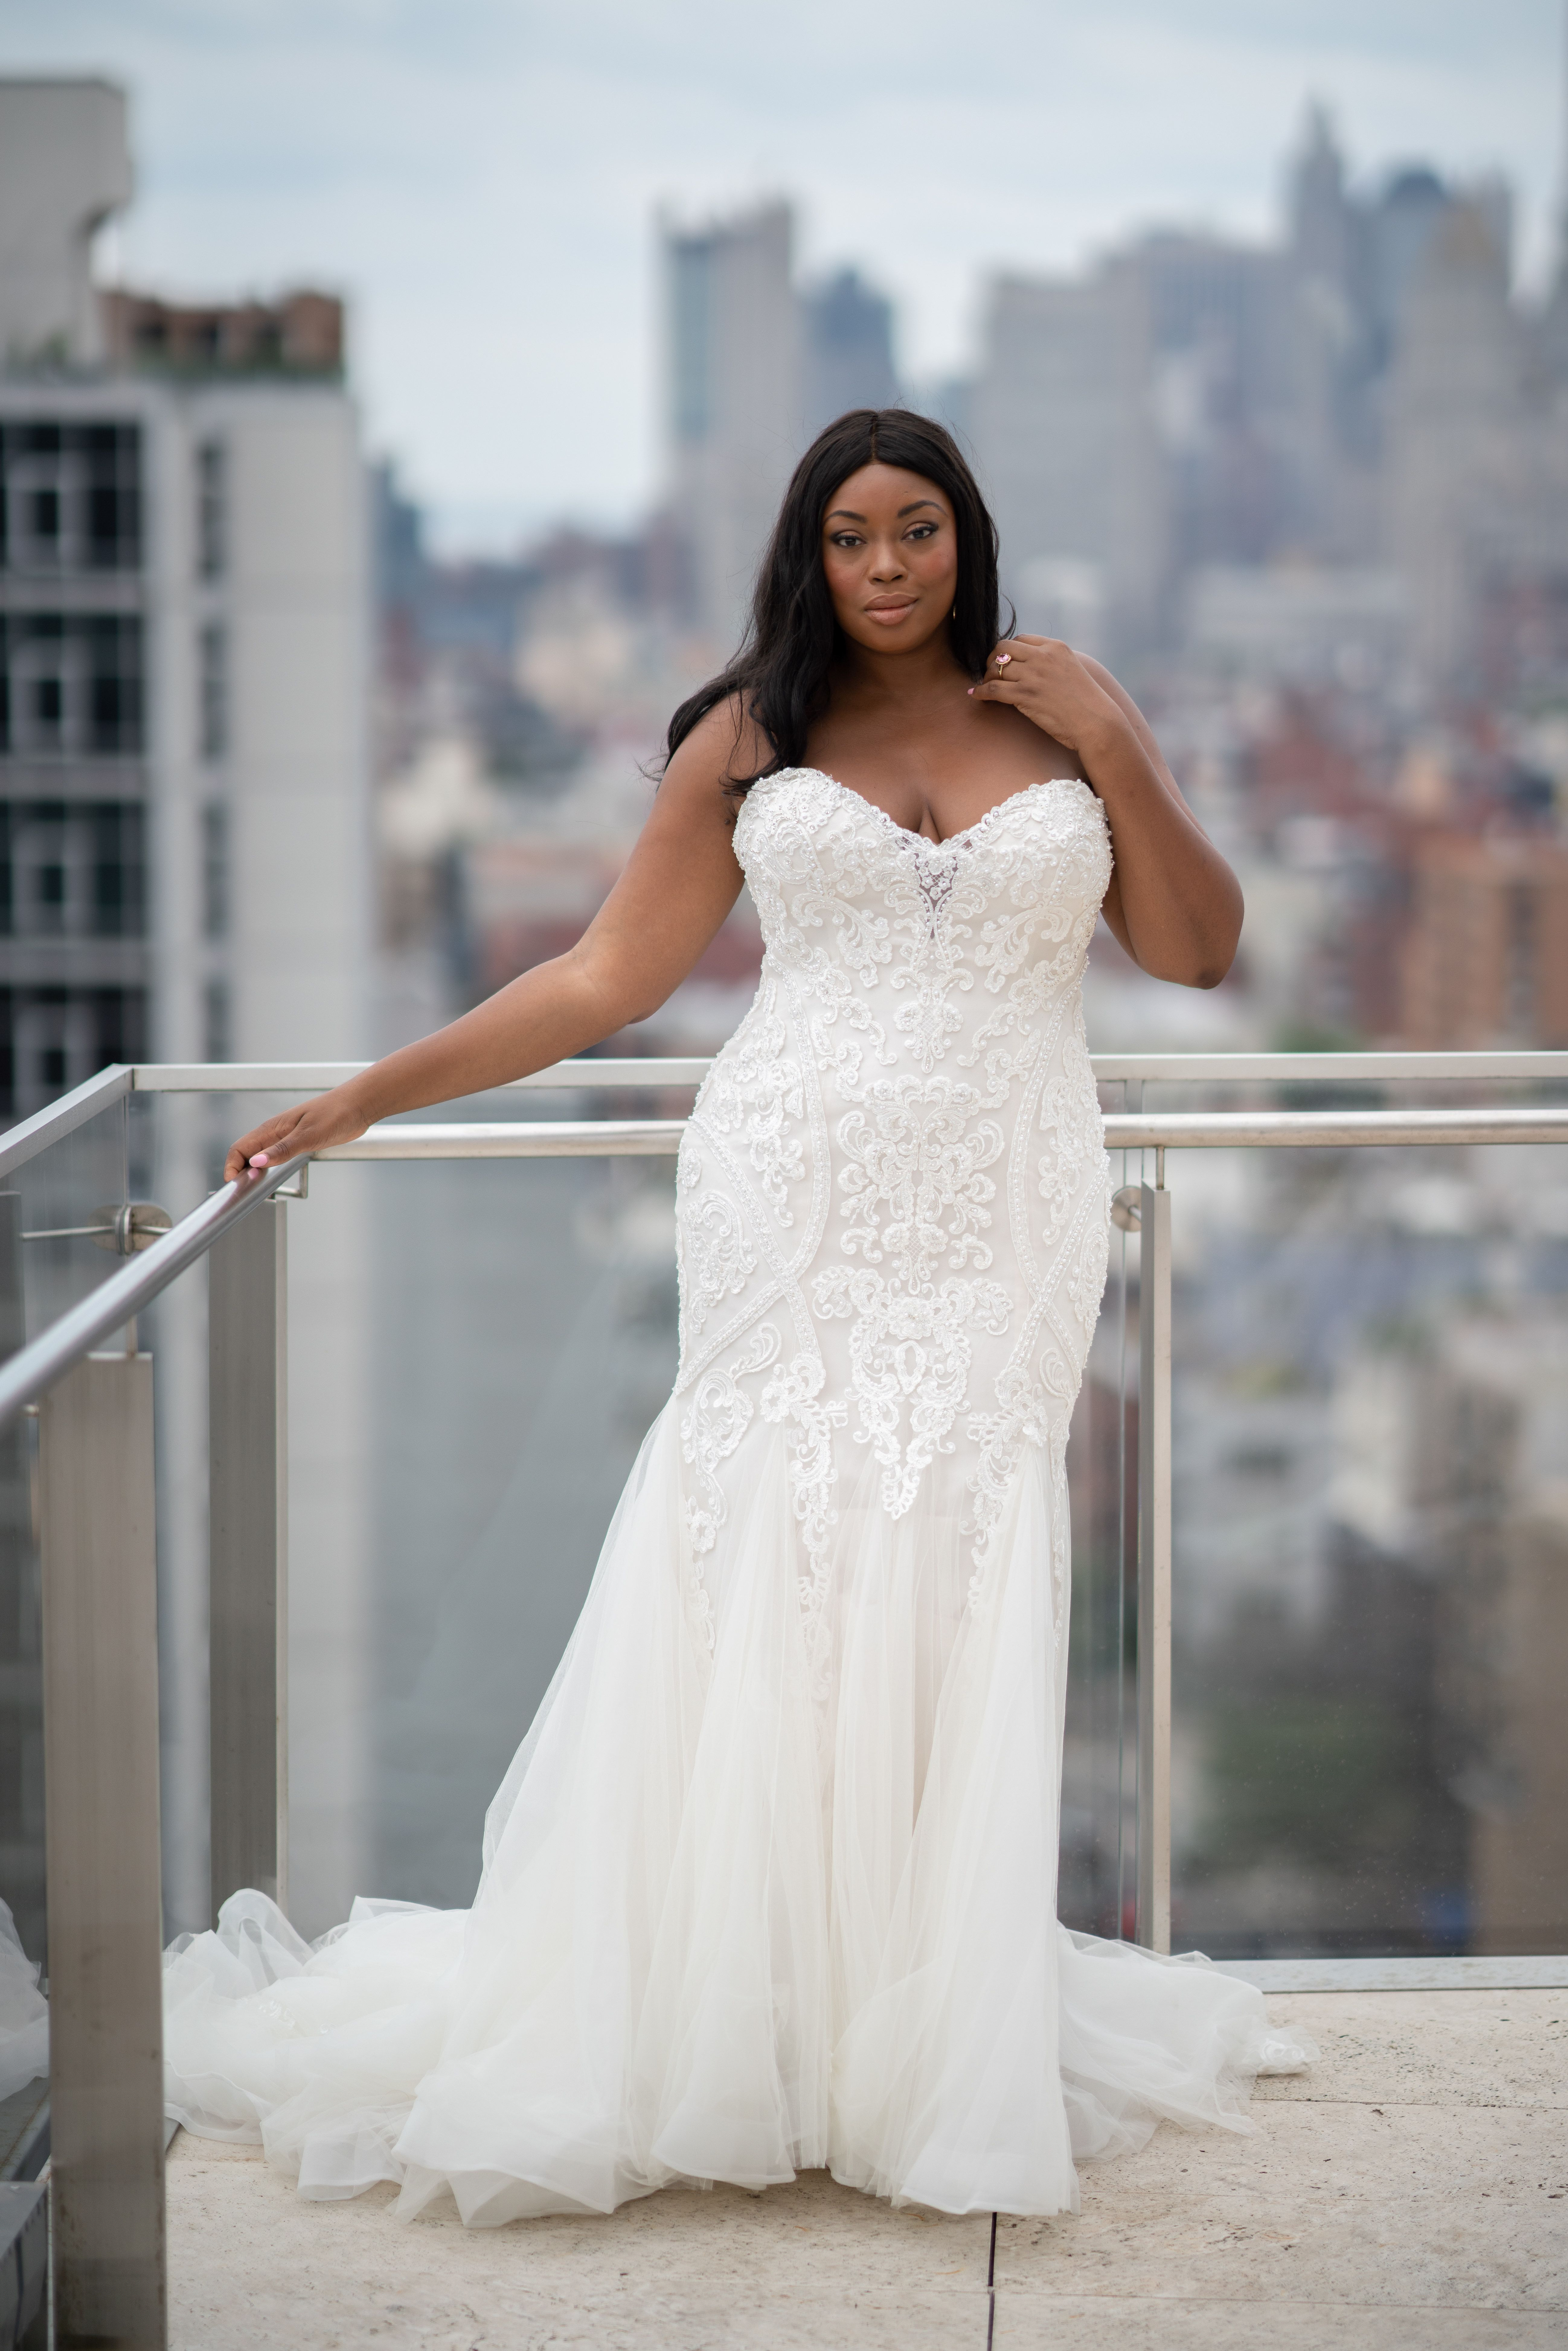 b4aa383675 On Cloud 9 during  NYBFW at The Standard East Village. Lovely Liris wearing  Quincy by Maggie Sottero. This vintage-inspired wedding gown features a  bodice ...